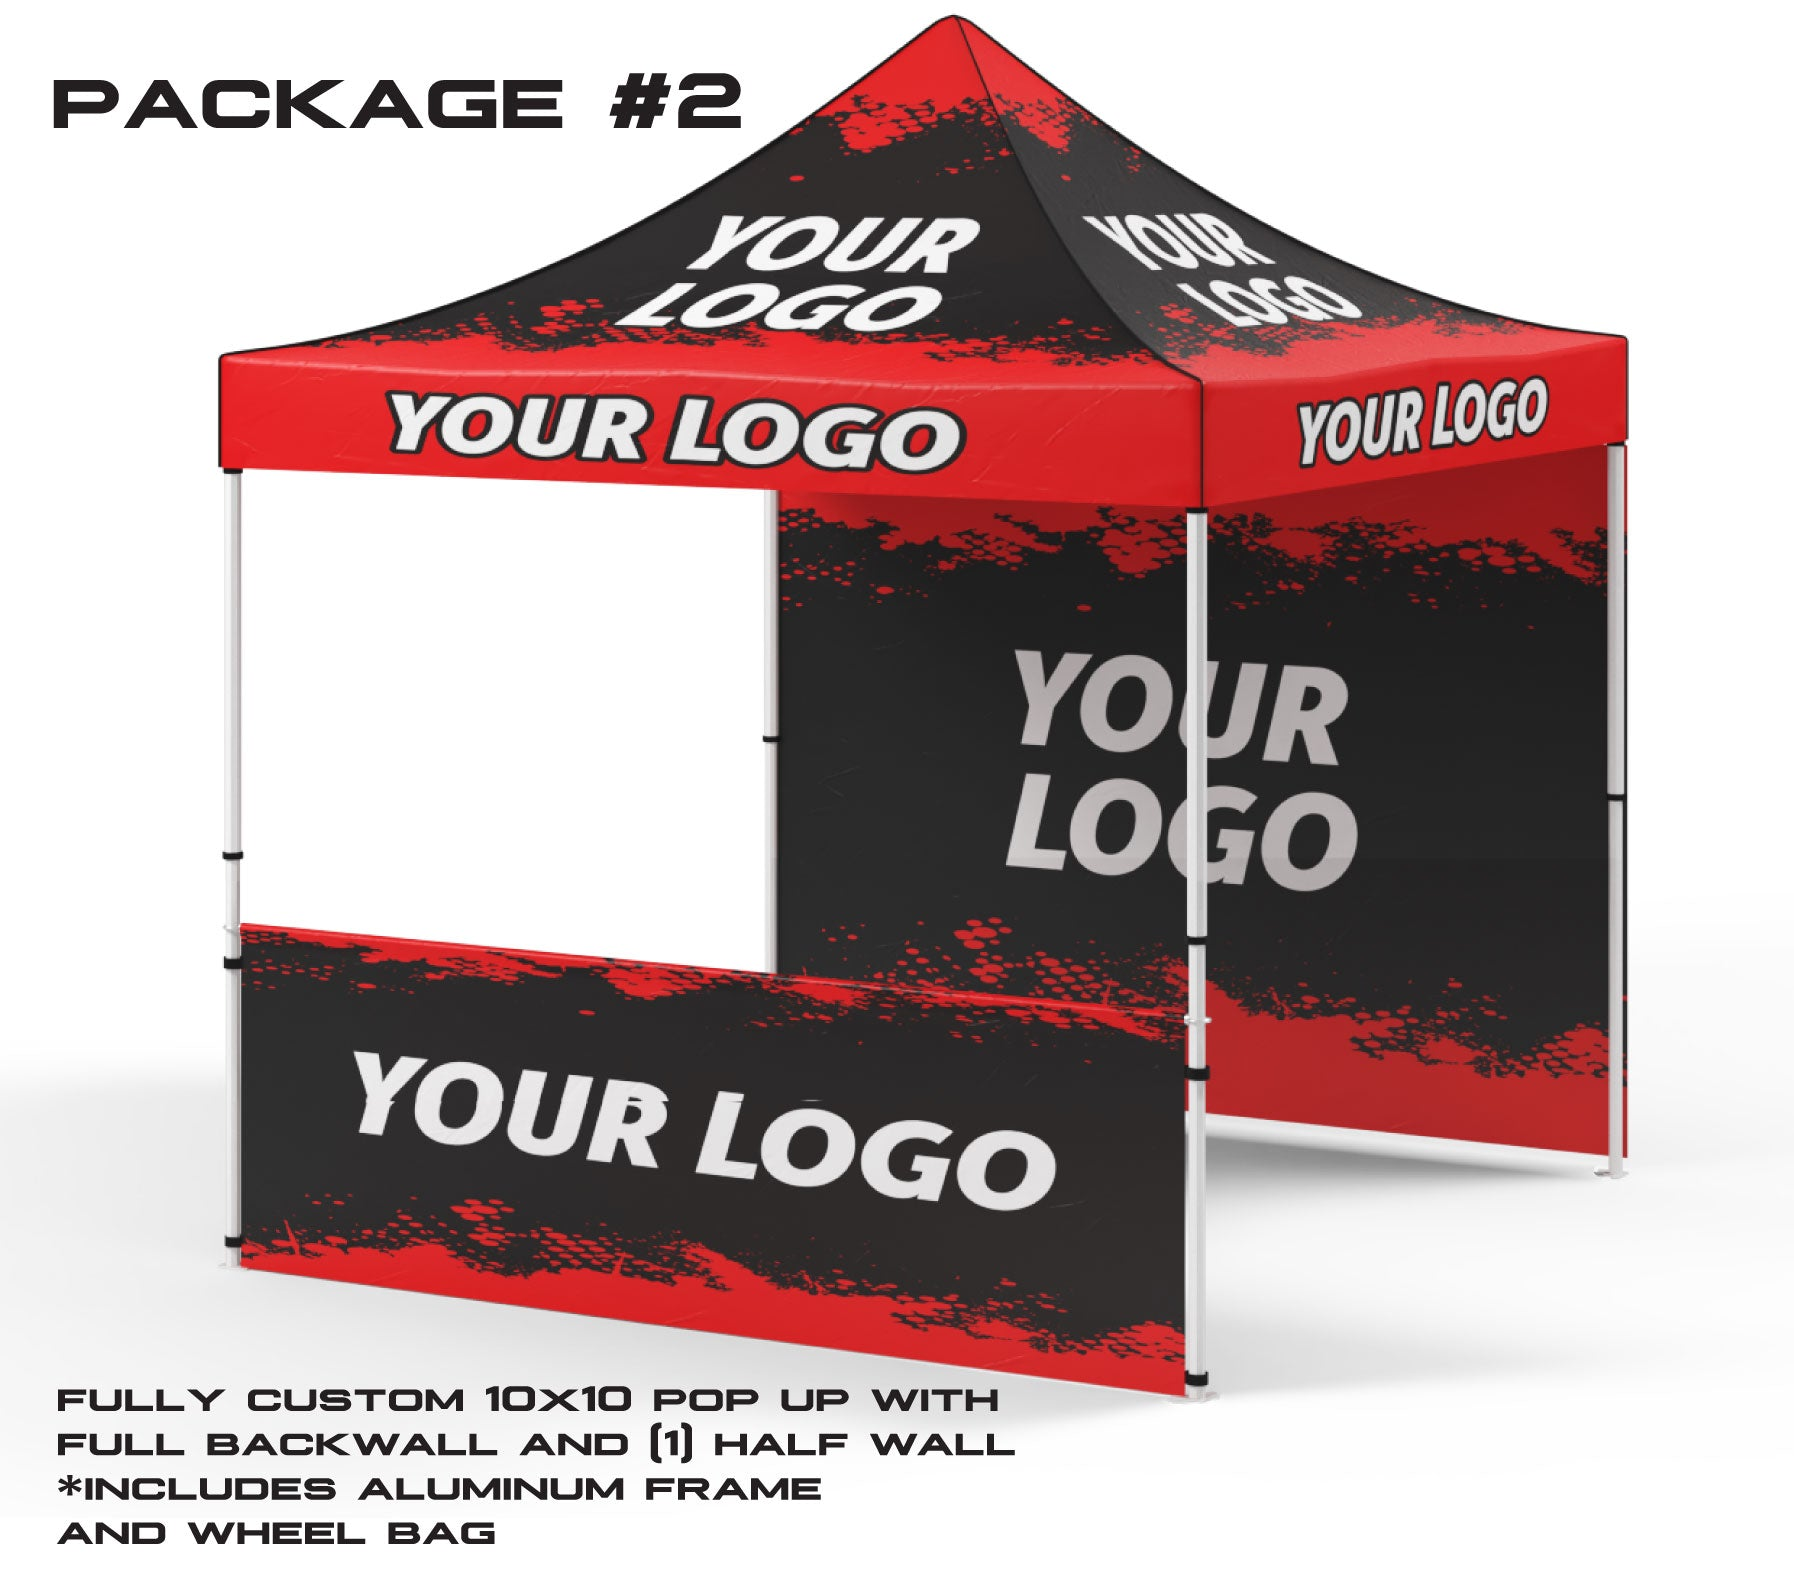 10x10 Package #2